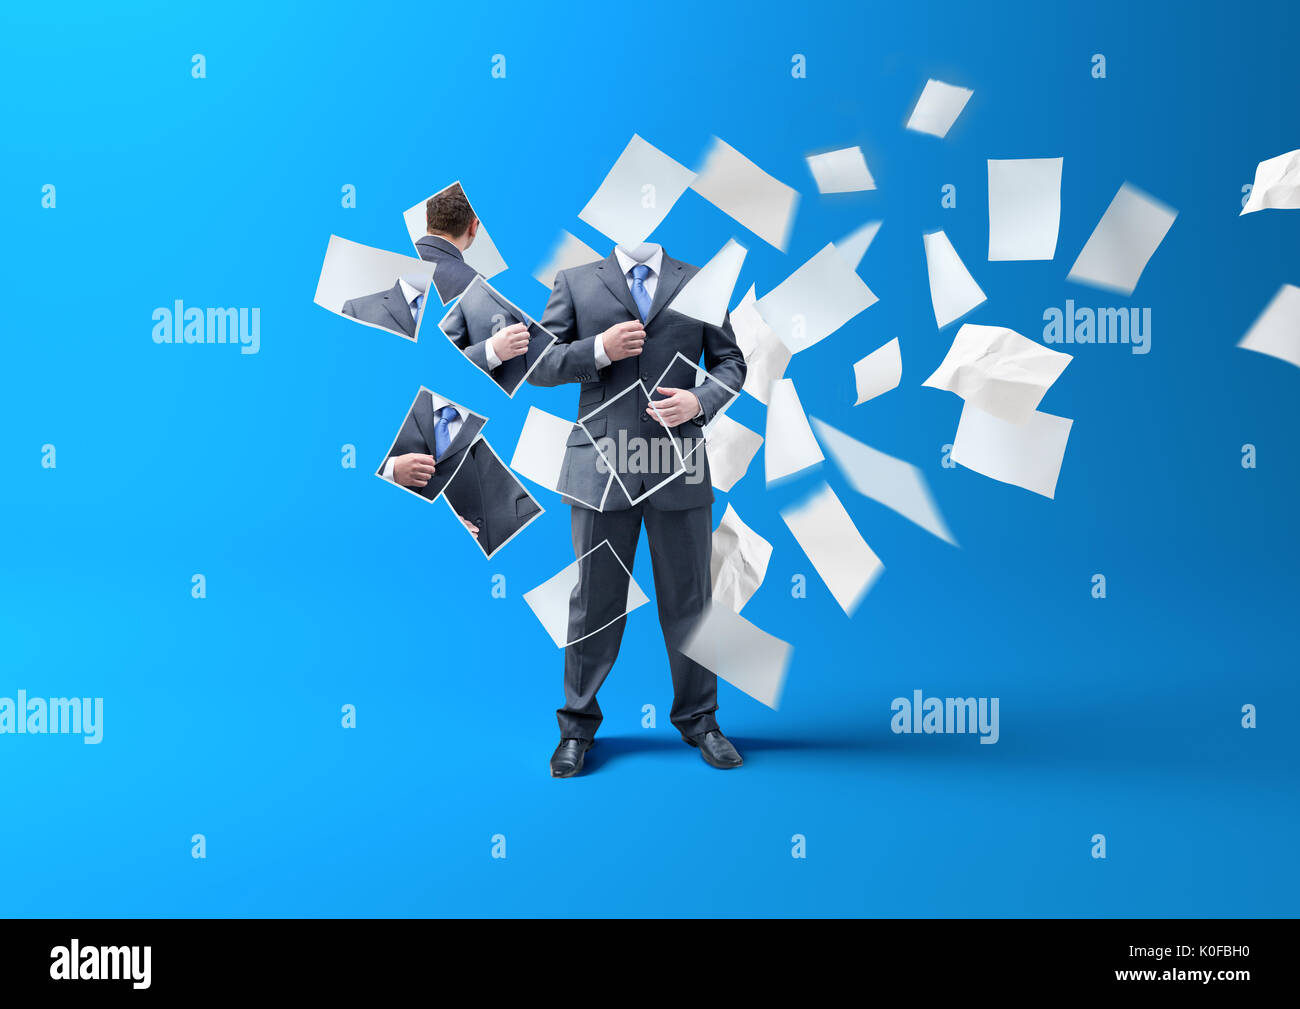 Printing A businessman. A person being made/ lost in printed paper blowing in the wind. business concept. - Stock Image